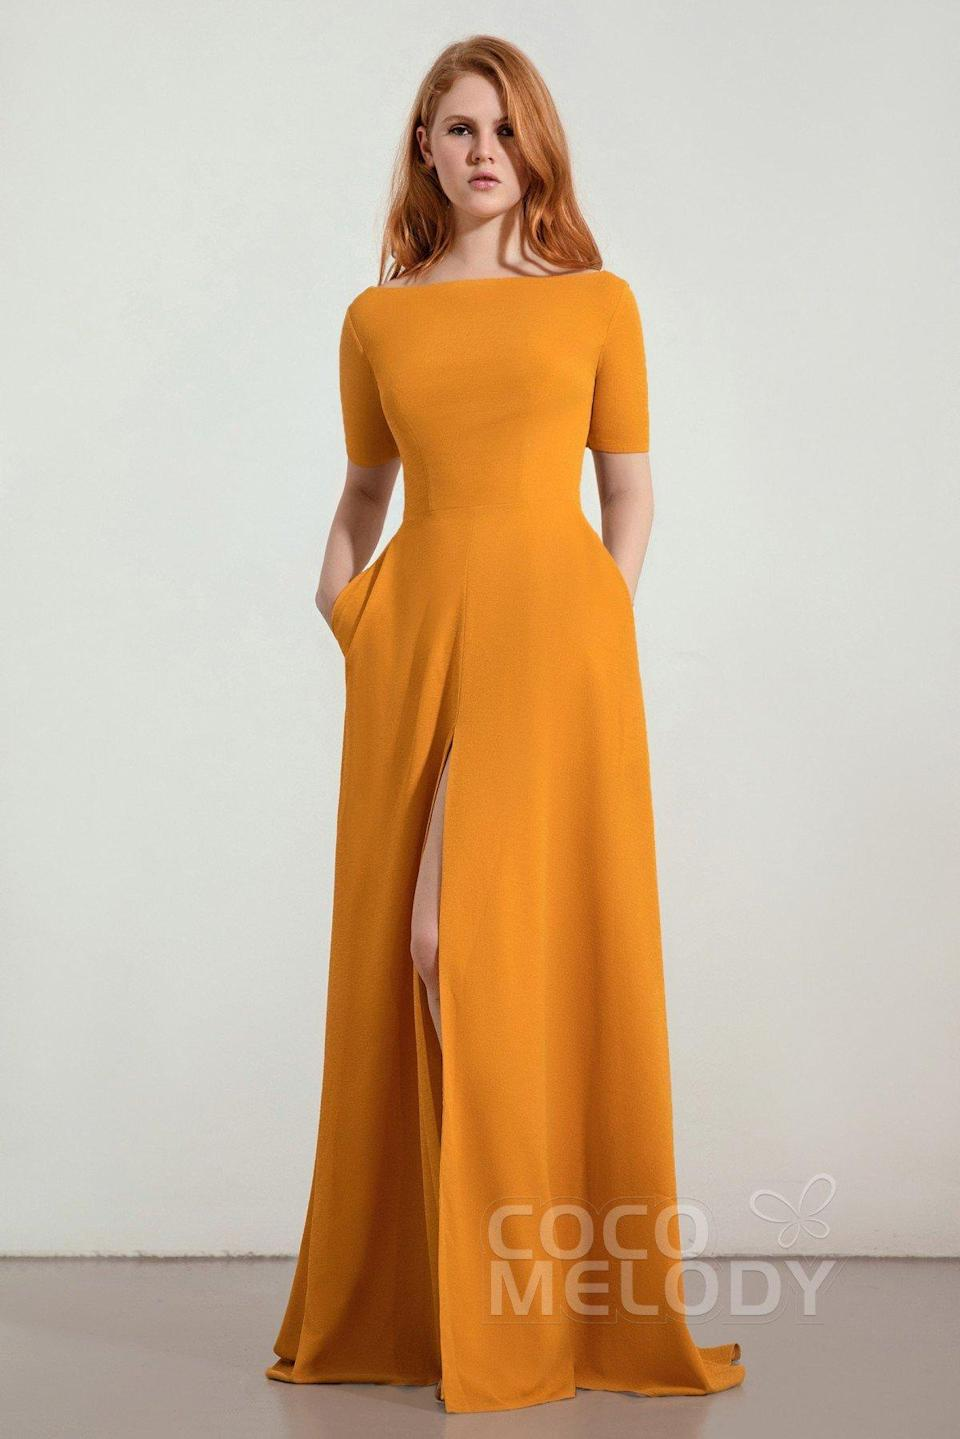 """<h3>Cocomelody</h3><br><strong>Price Range: </strong>$69 - $219<br><strong>Size Range: </strong>0 - 28<br><br>This California-based direct-to-consumer website is swimming with chic, competitively-priced bridesmaid-friendly finds. Despite having only a few brick-and-mortar locations within the US (one permanent shop in LA and a pop-up in New York), they make it easy to shop online by sending fabric swatches and populating every product listing with copious photos. (PSA to brides: they will also ship you up to three dresses at a time for a <a href=""""https://www.cocomelody.com/try-at-home-wedding-dresses"""" rel=""""nofollow noopener"""" target=""""_blank"""" data-ylk=""""slk:three-day, at-home try-on session"""" class=""""link rapid-noclick-resp"""">three-day, at-home try-on session</a> — a bonus if you're not in proximity to the brick and mortar stores.)<br><br><em>Shop </em><strong><em><a href=""""https://www.cocomelody.com/bridesmaids"""" rel=""""nofollow noopener"""" target=""""_blank"""" data-ylk=""""slk:Cocomelody"""" class=""""link rapid-noclick-resp"""">Cocomelody</a></em></strong><br><br><strong>Cocomelody</strong> A-Line Sweep Train Twisted Silk Bridesmaid Dress, $, available at <a href=""""https://go.skimresources.com/?id=30283X879131&url=https%3A%2F%2Fwww.cocomelody.com%2Fa-line-sweep-brush-train-twisted-silk-fabric-bridesmaid-dress-cb0280.html%3Foptionid%3D1388"""" rel=""""nofollow noopener"""" target=""""_blank"""" data-ylk=""""slk:Cocomelody"""" class=""""link rapid-noclick-resp"""">Cocomelody</a>"""